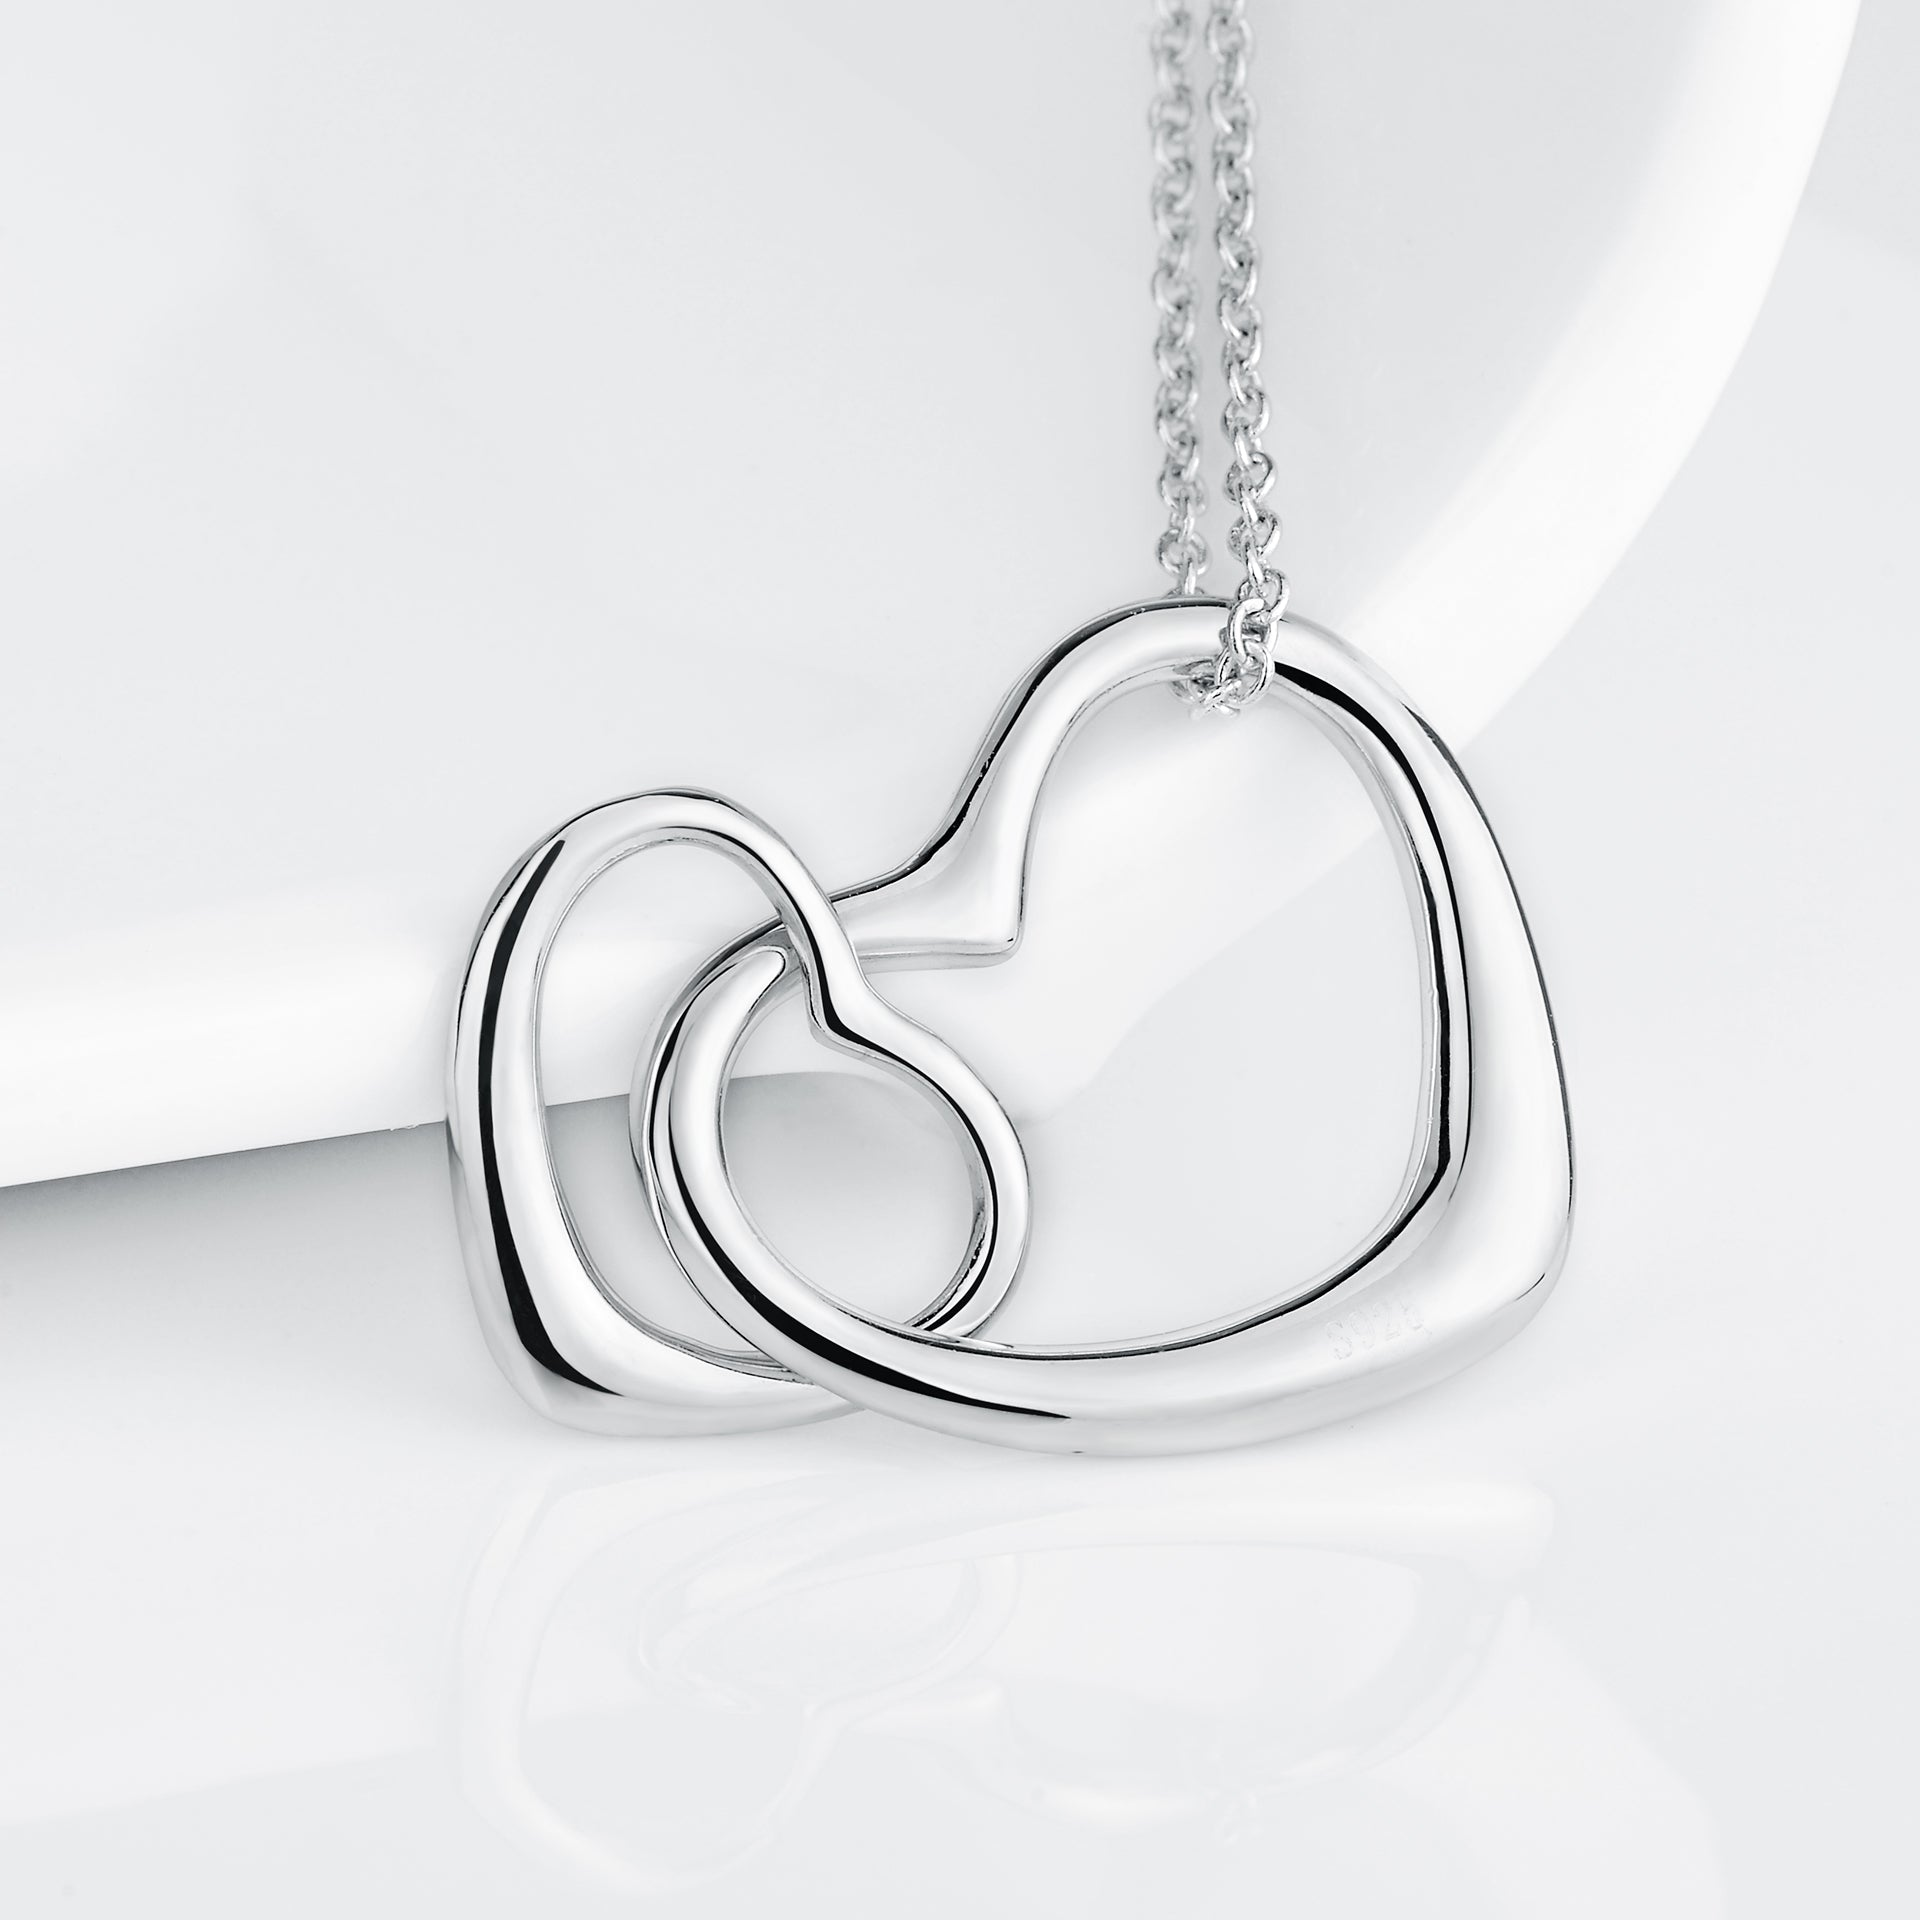 Heart Necklaces For Gifts New Simple Design Women Jewelry Chain Necklaces